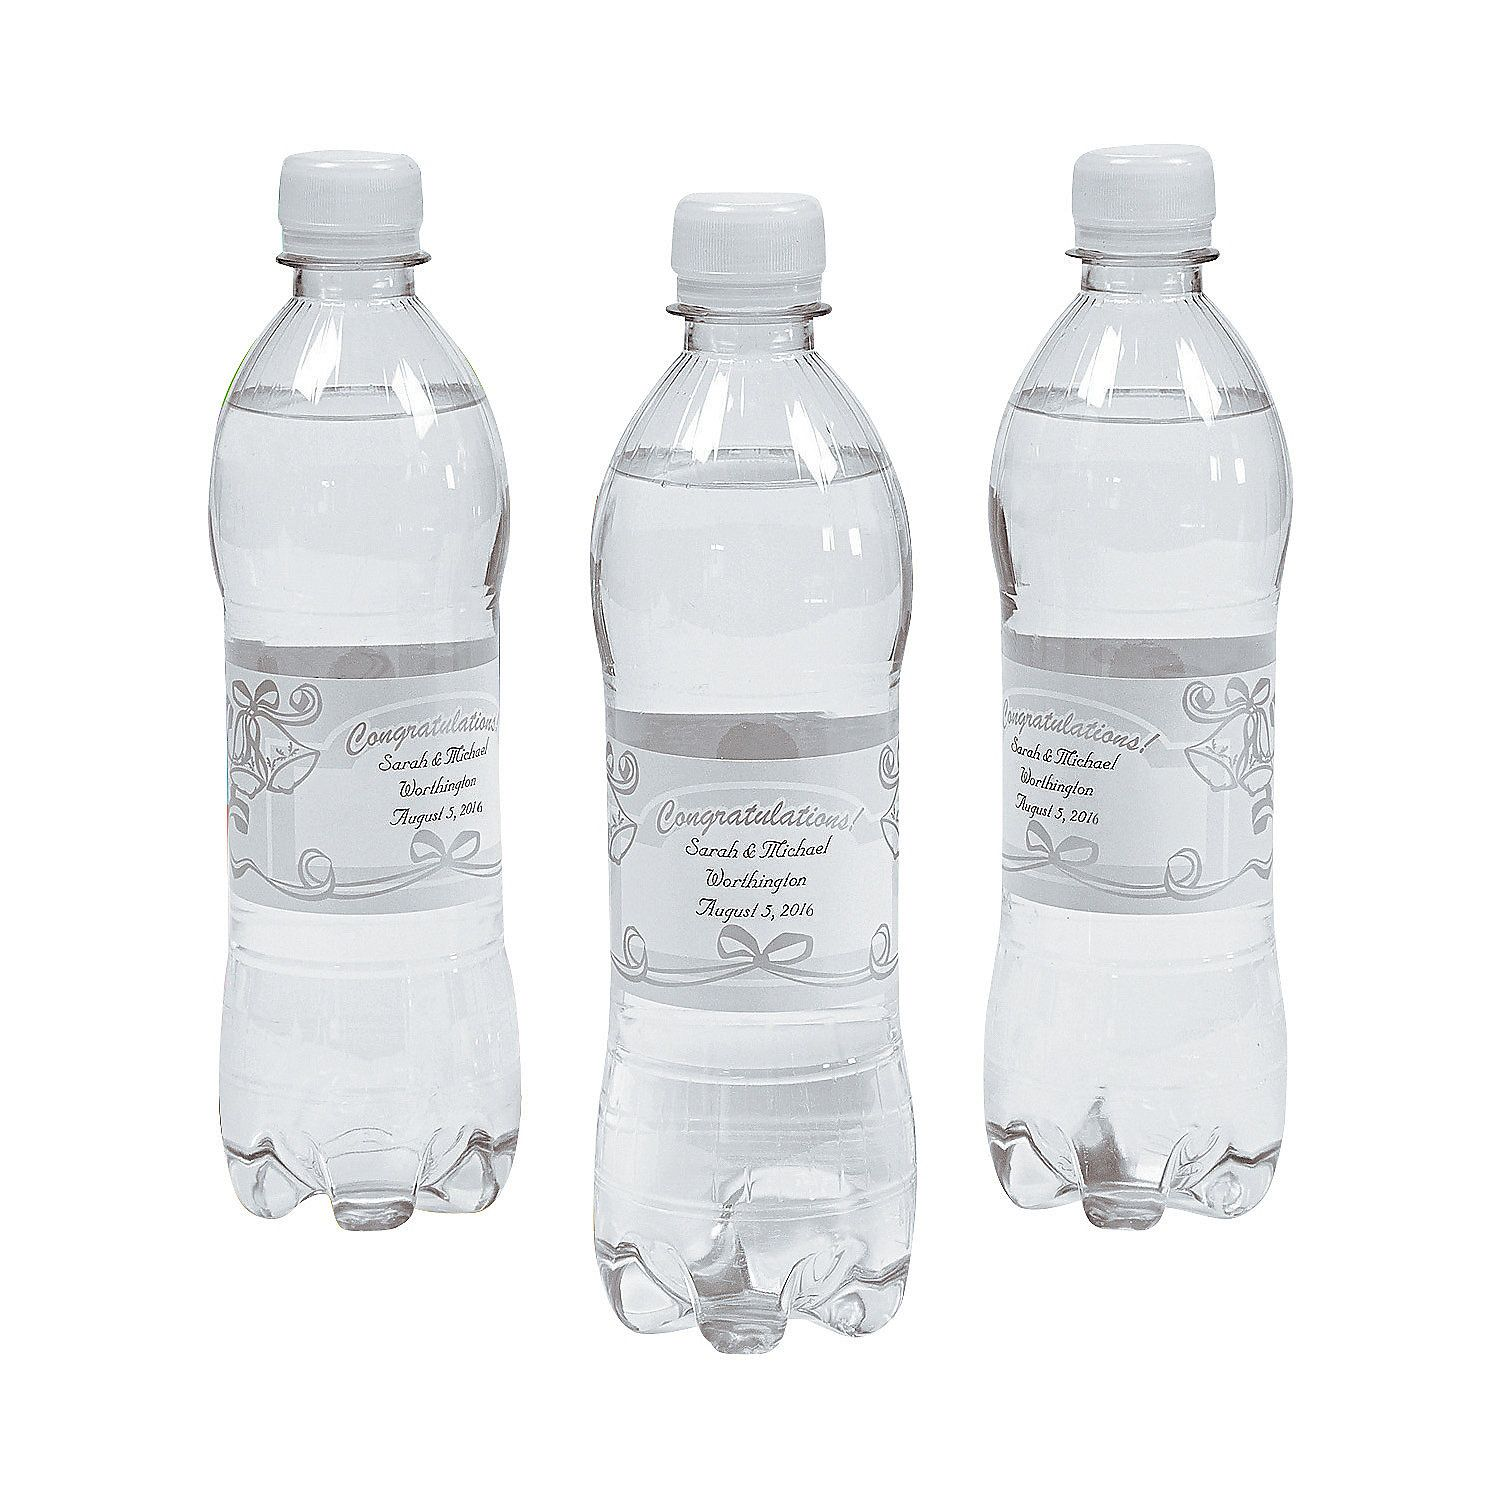 Personalized+Elegant+Wedding+Water+Bottle+Labels+-+MarryMe.com | The ...